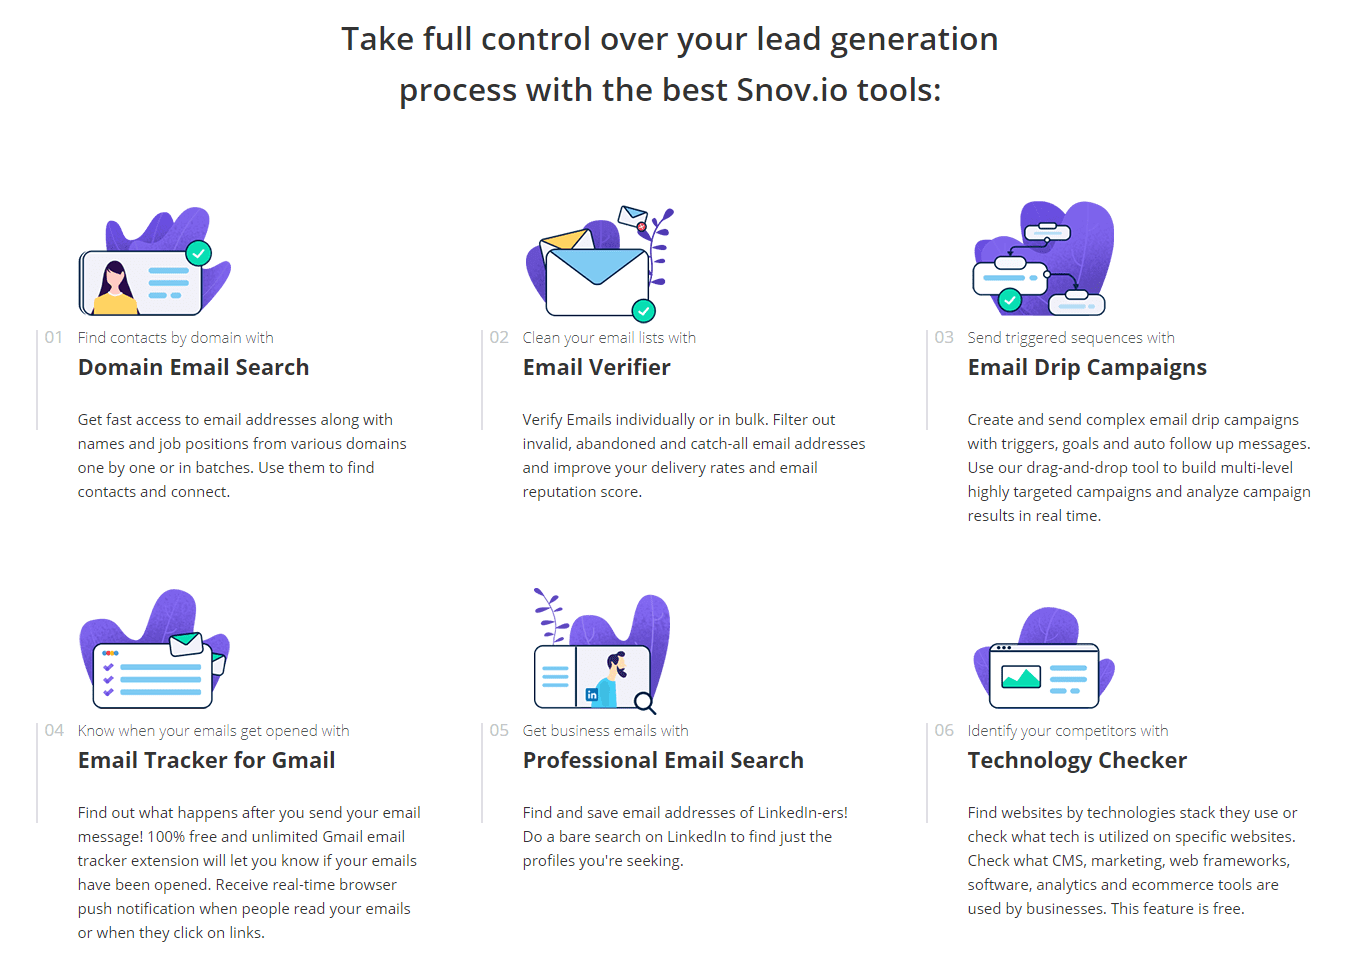 Outreach automation find validate and email prospects with Snovio